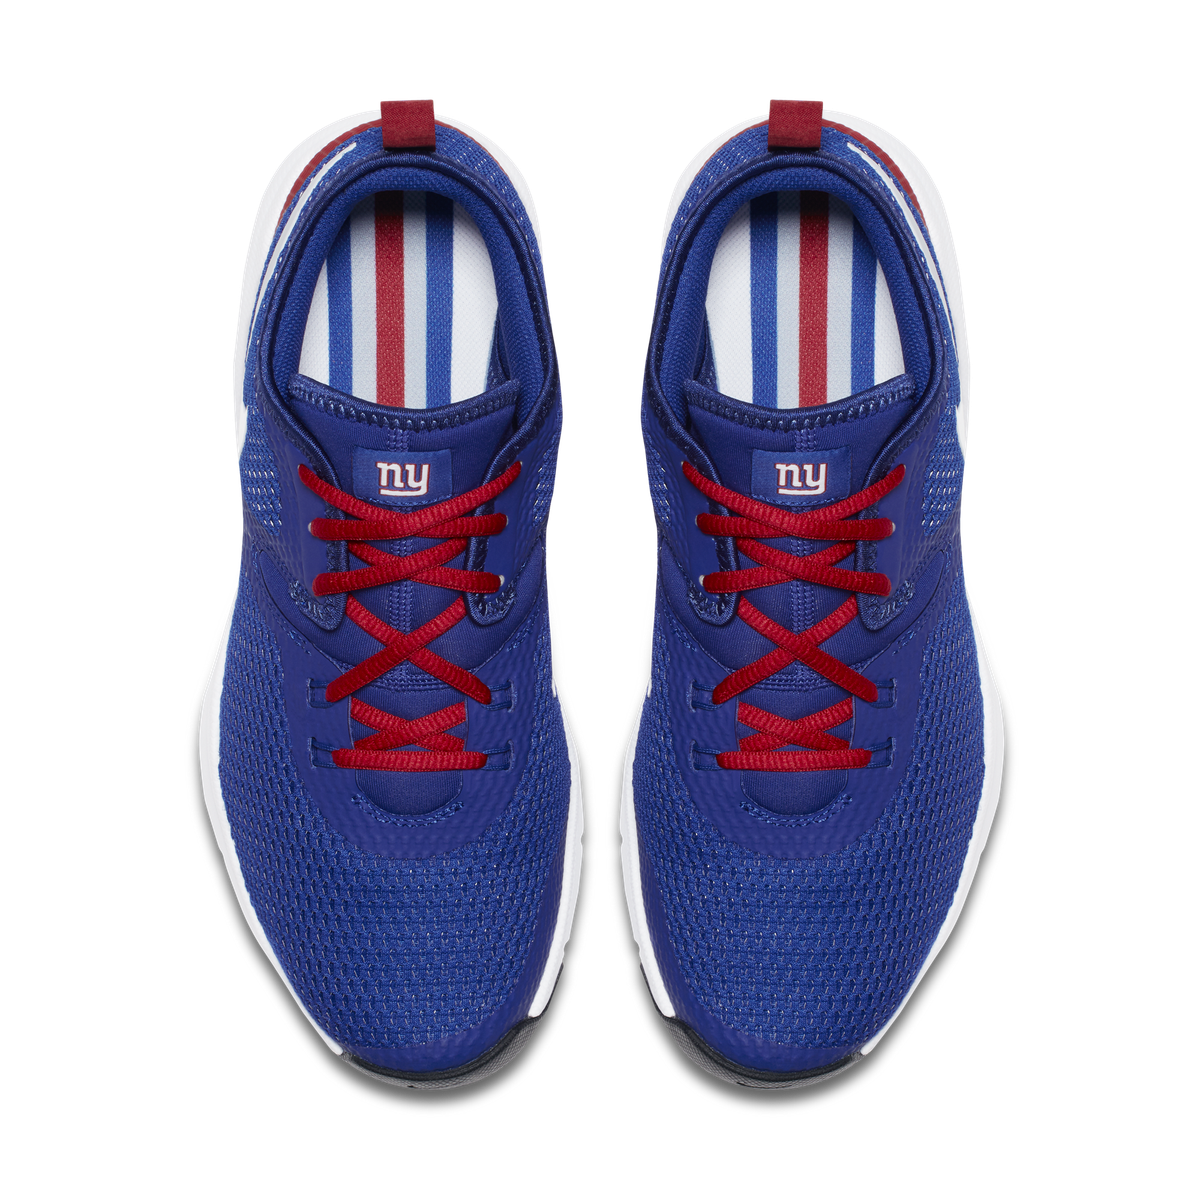 Nike releases new NFL-themed Air Max Typha 2 shoe collection ... c32a3095d